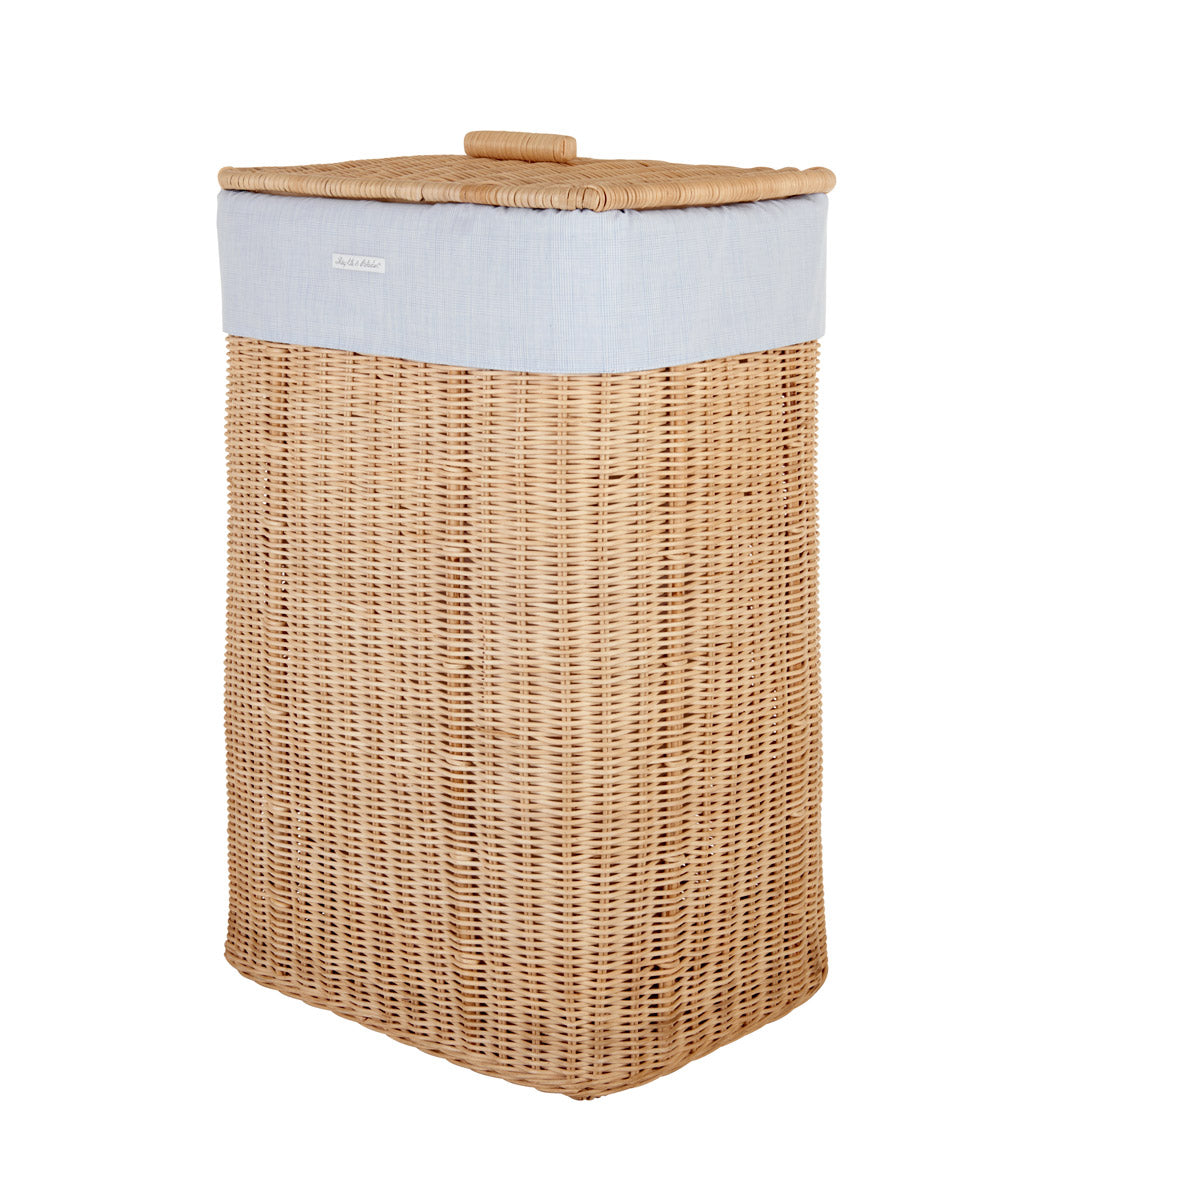 Theophile & Patachou Natural Rectangular Wicker Basket and Cover Linen - Sweet Blue